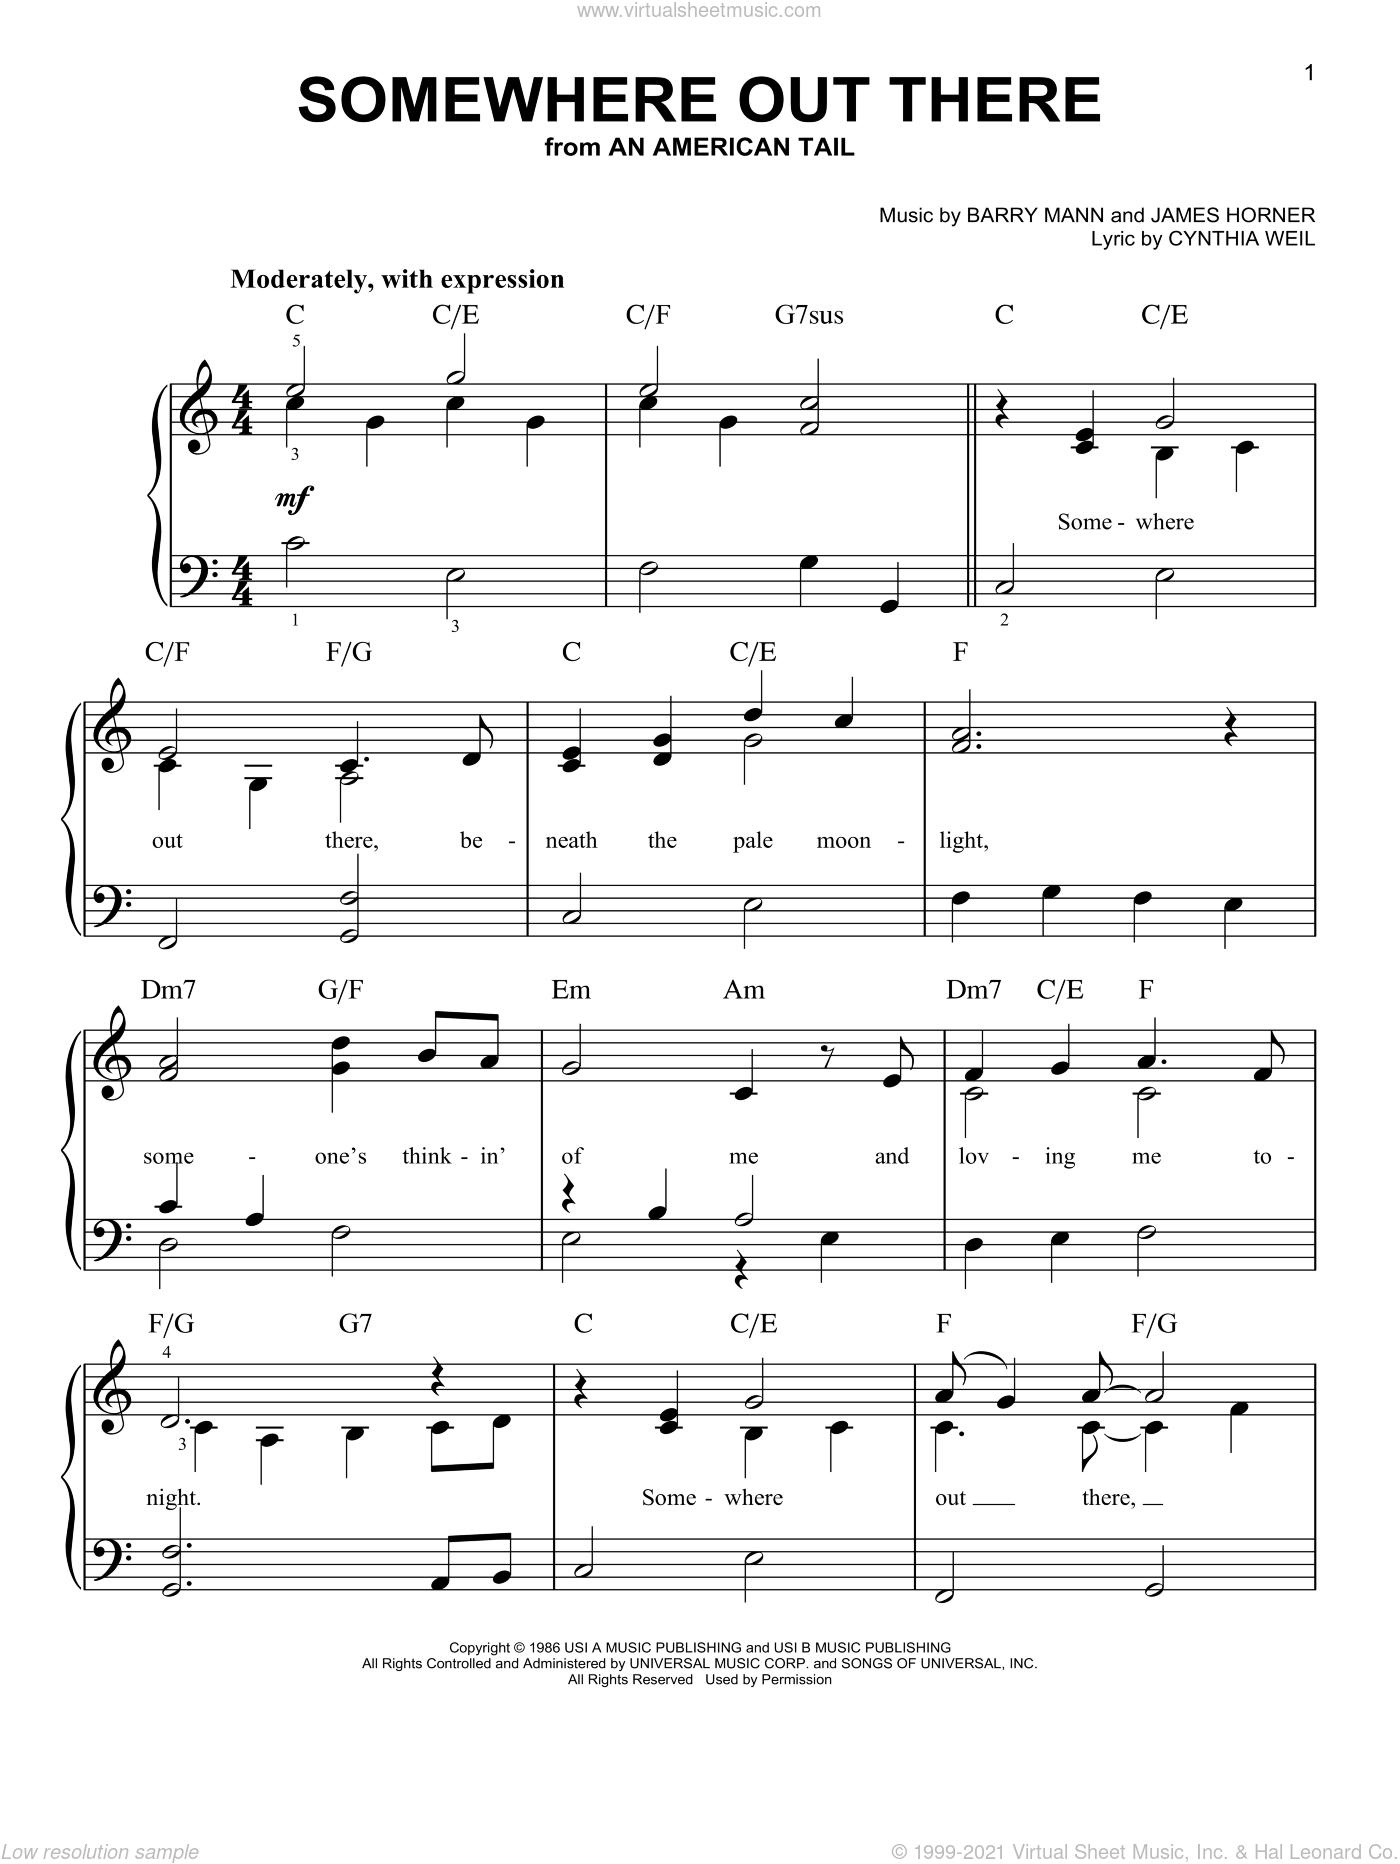 Somewhere Out There sheet music for piano solo by Linda Ronstadt & James Ingram, James Ingram, Linda Ronstadt, Barry Mann, Cynthia Weil and James Horner. Score Image Preview.